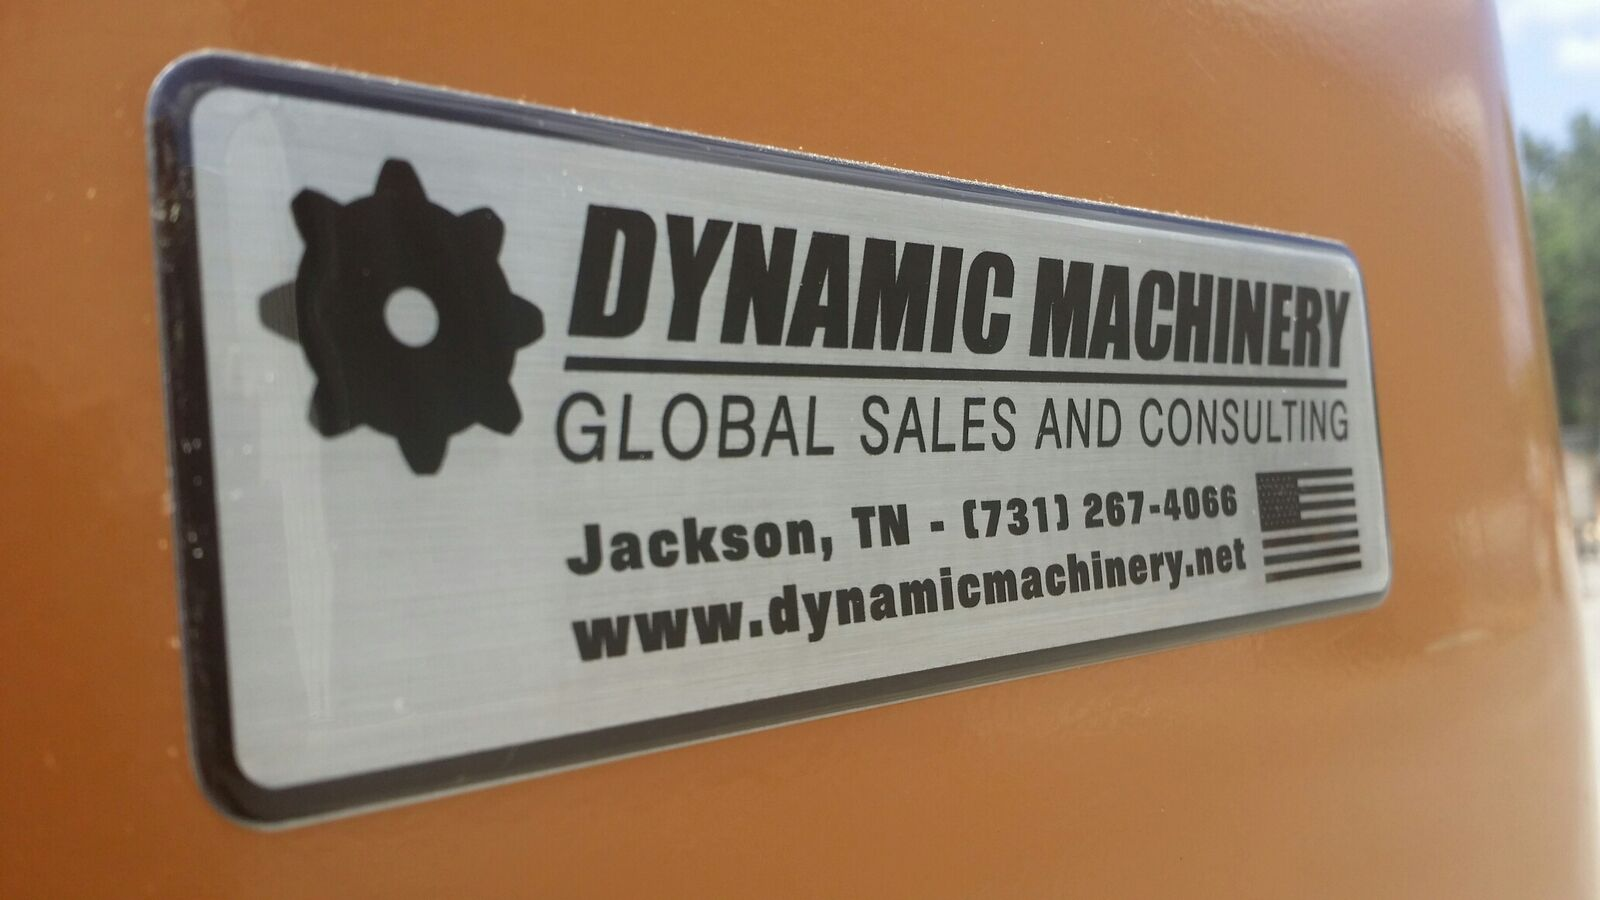 DYNAMIC MACHINERY